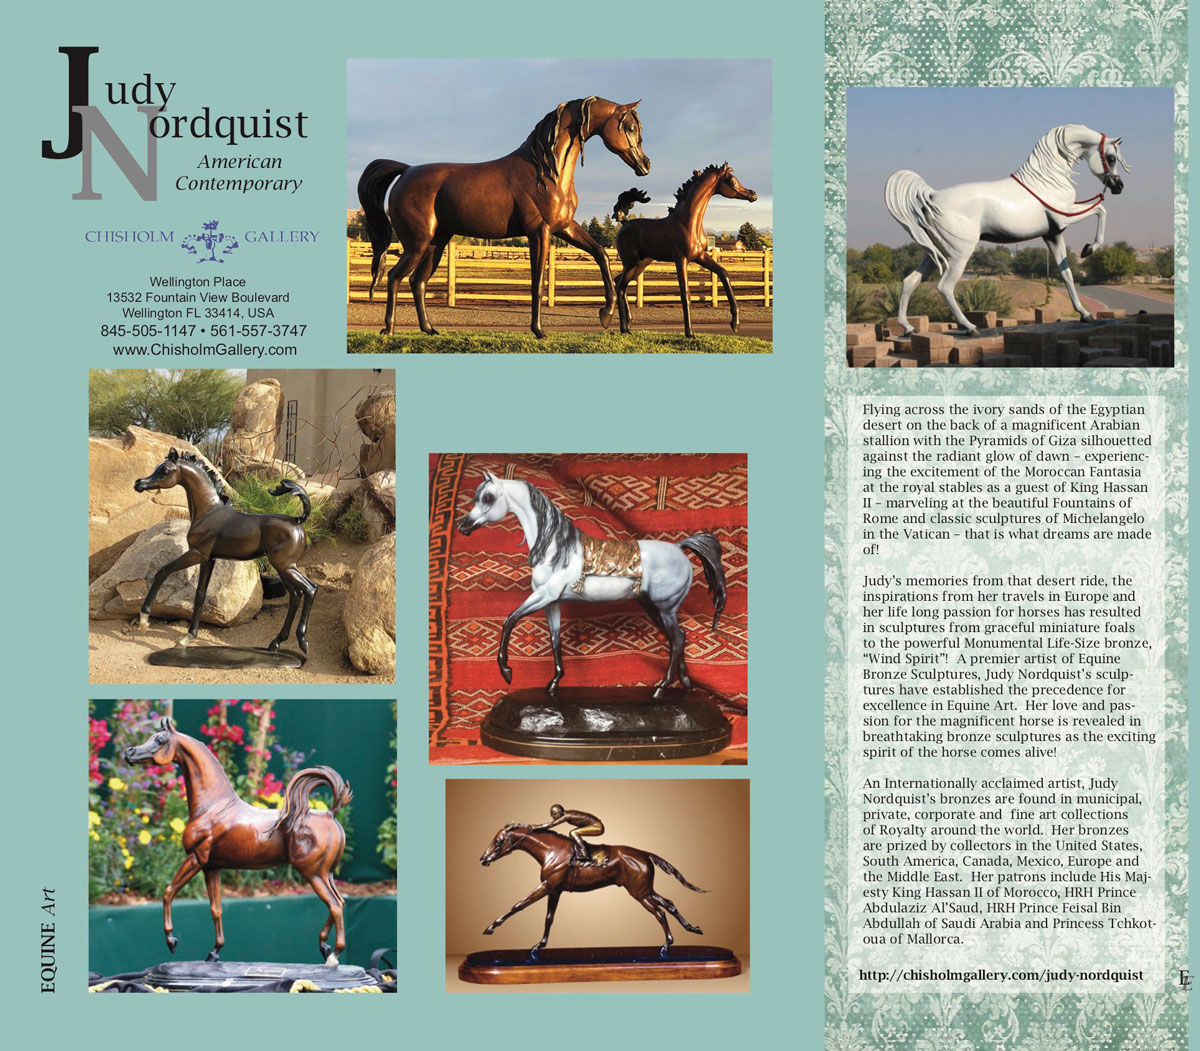 Elite-Equestrian-Judy-Nordquist-Featured-Artist-web